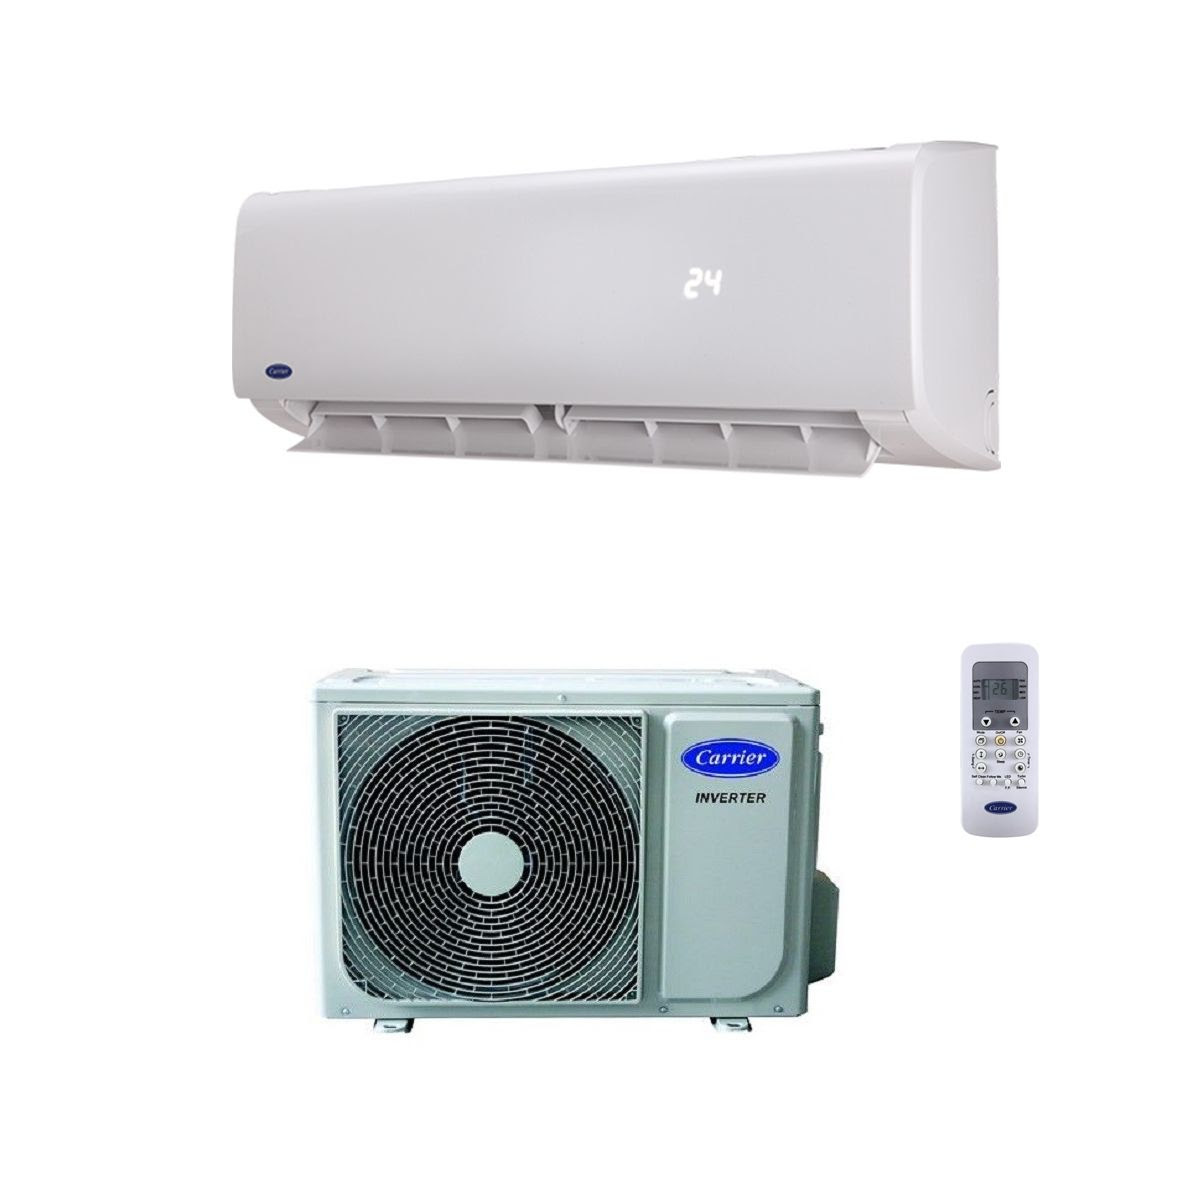 carrier air conditioning wall mounted 42qhc024ds 7kw 24000btu heating and cooling with remote control 240v 50hz 60hz 8178 p